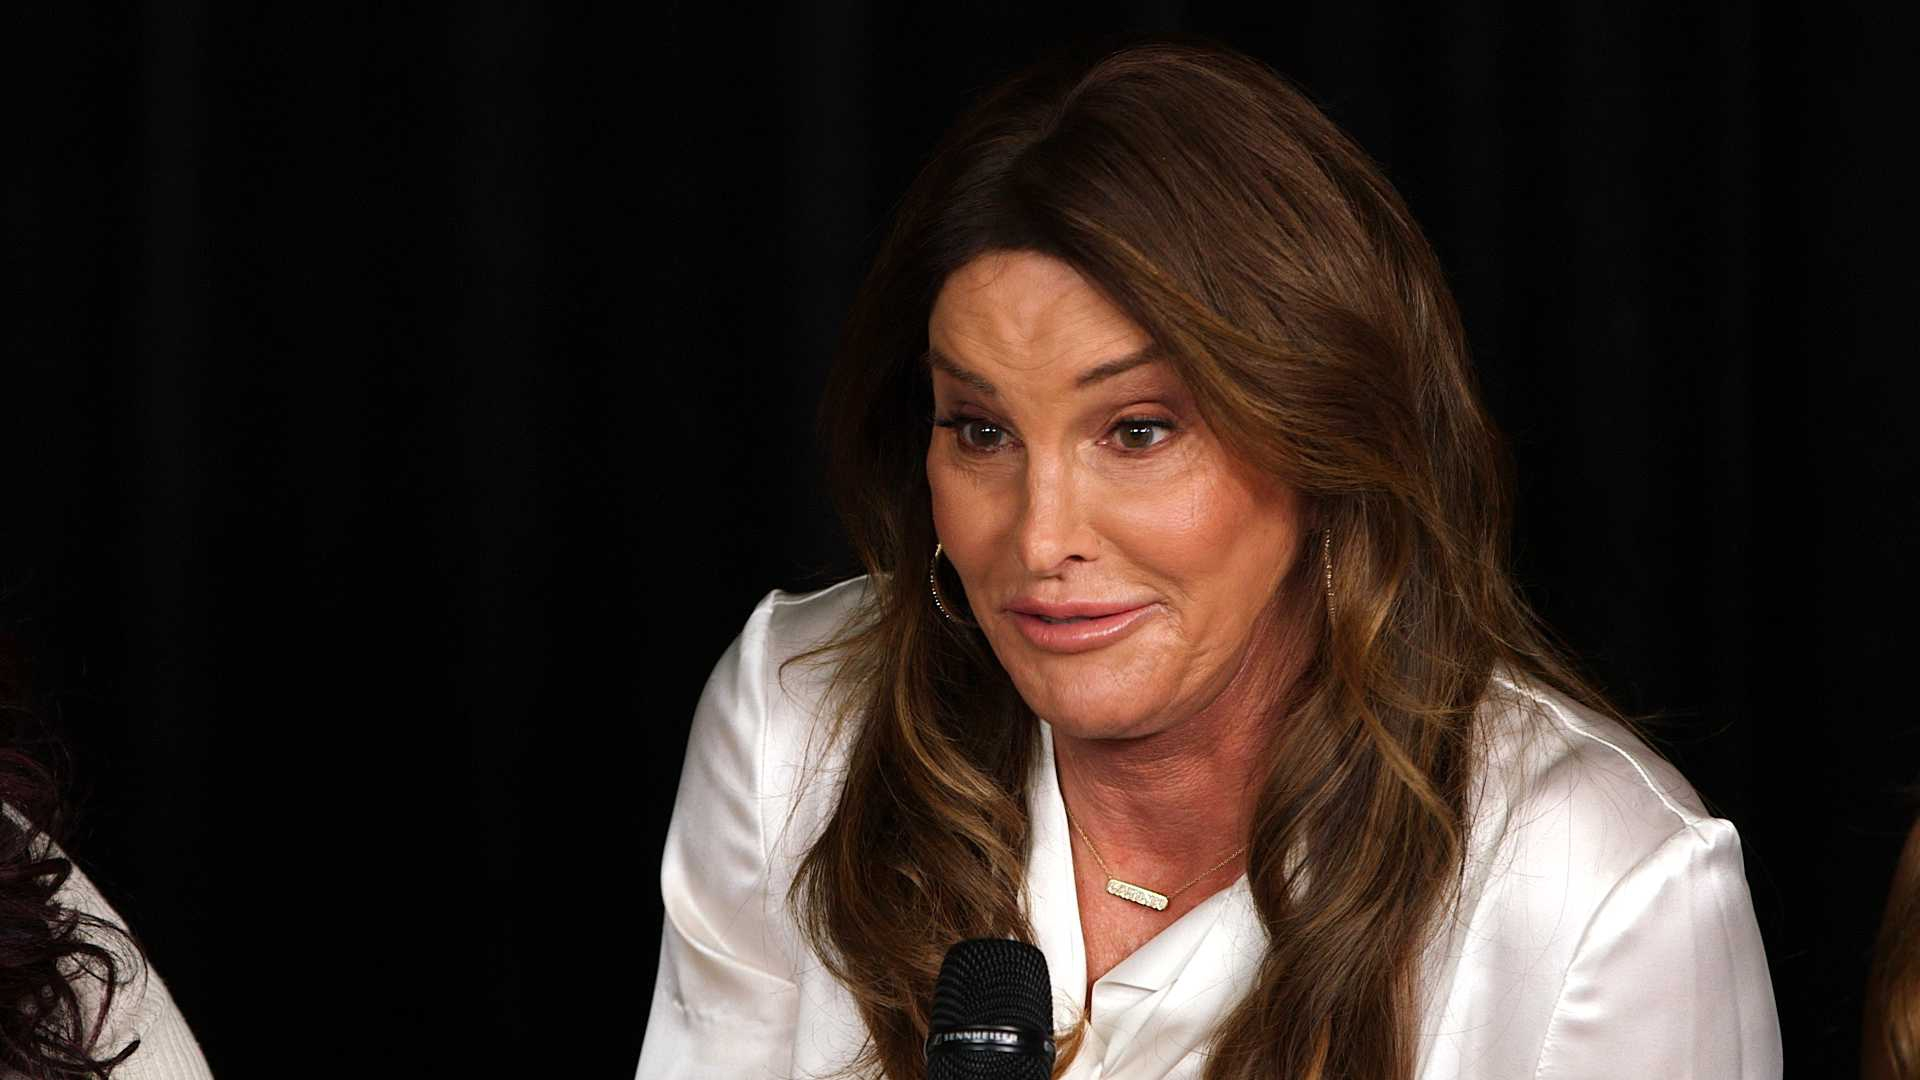 Caitlyn Jenner Talks Friendship With Ex-Wife Kris